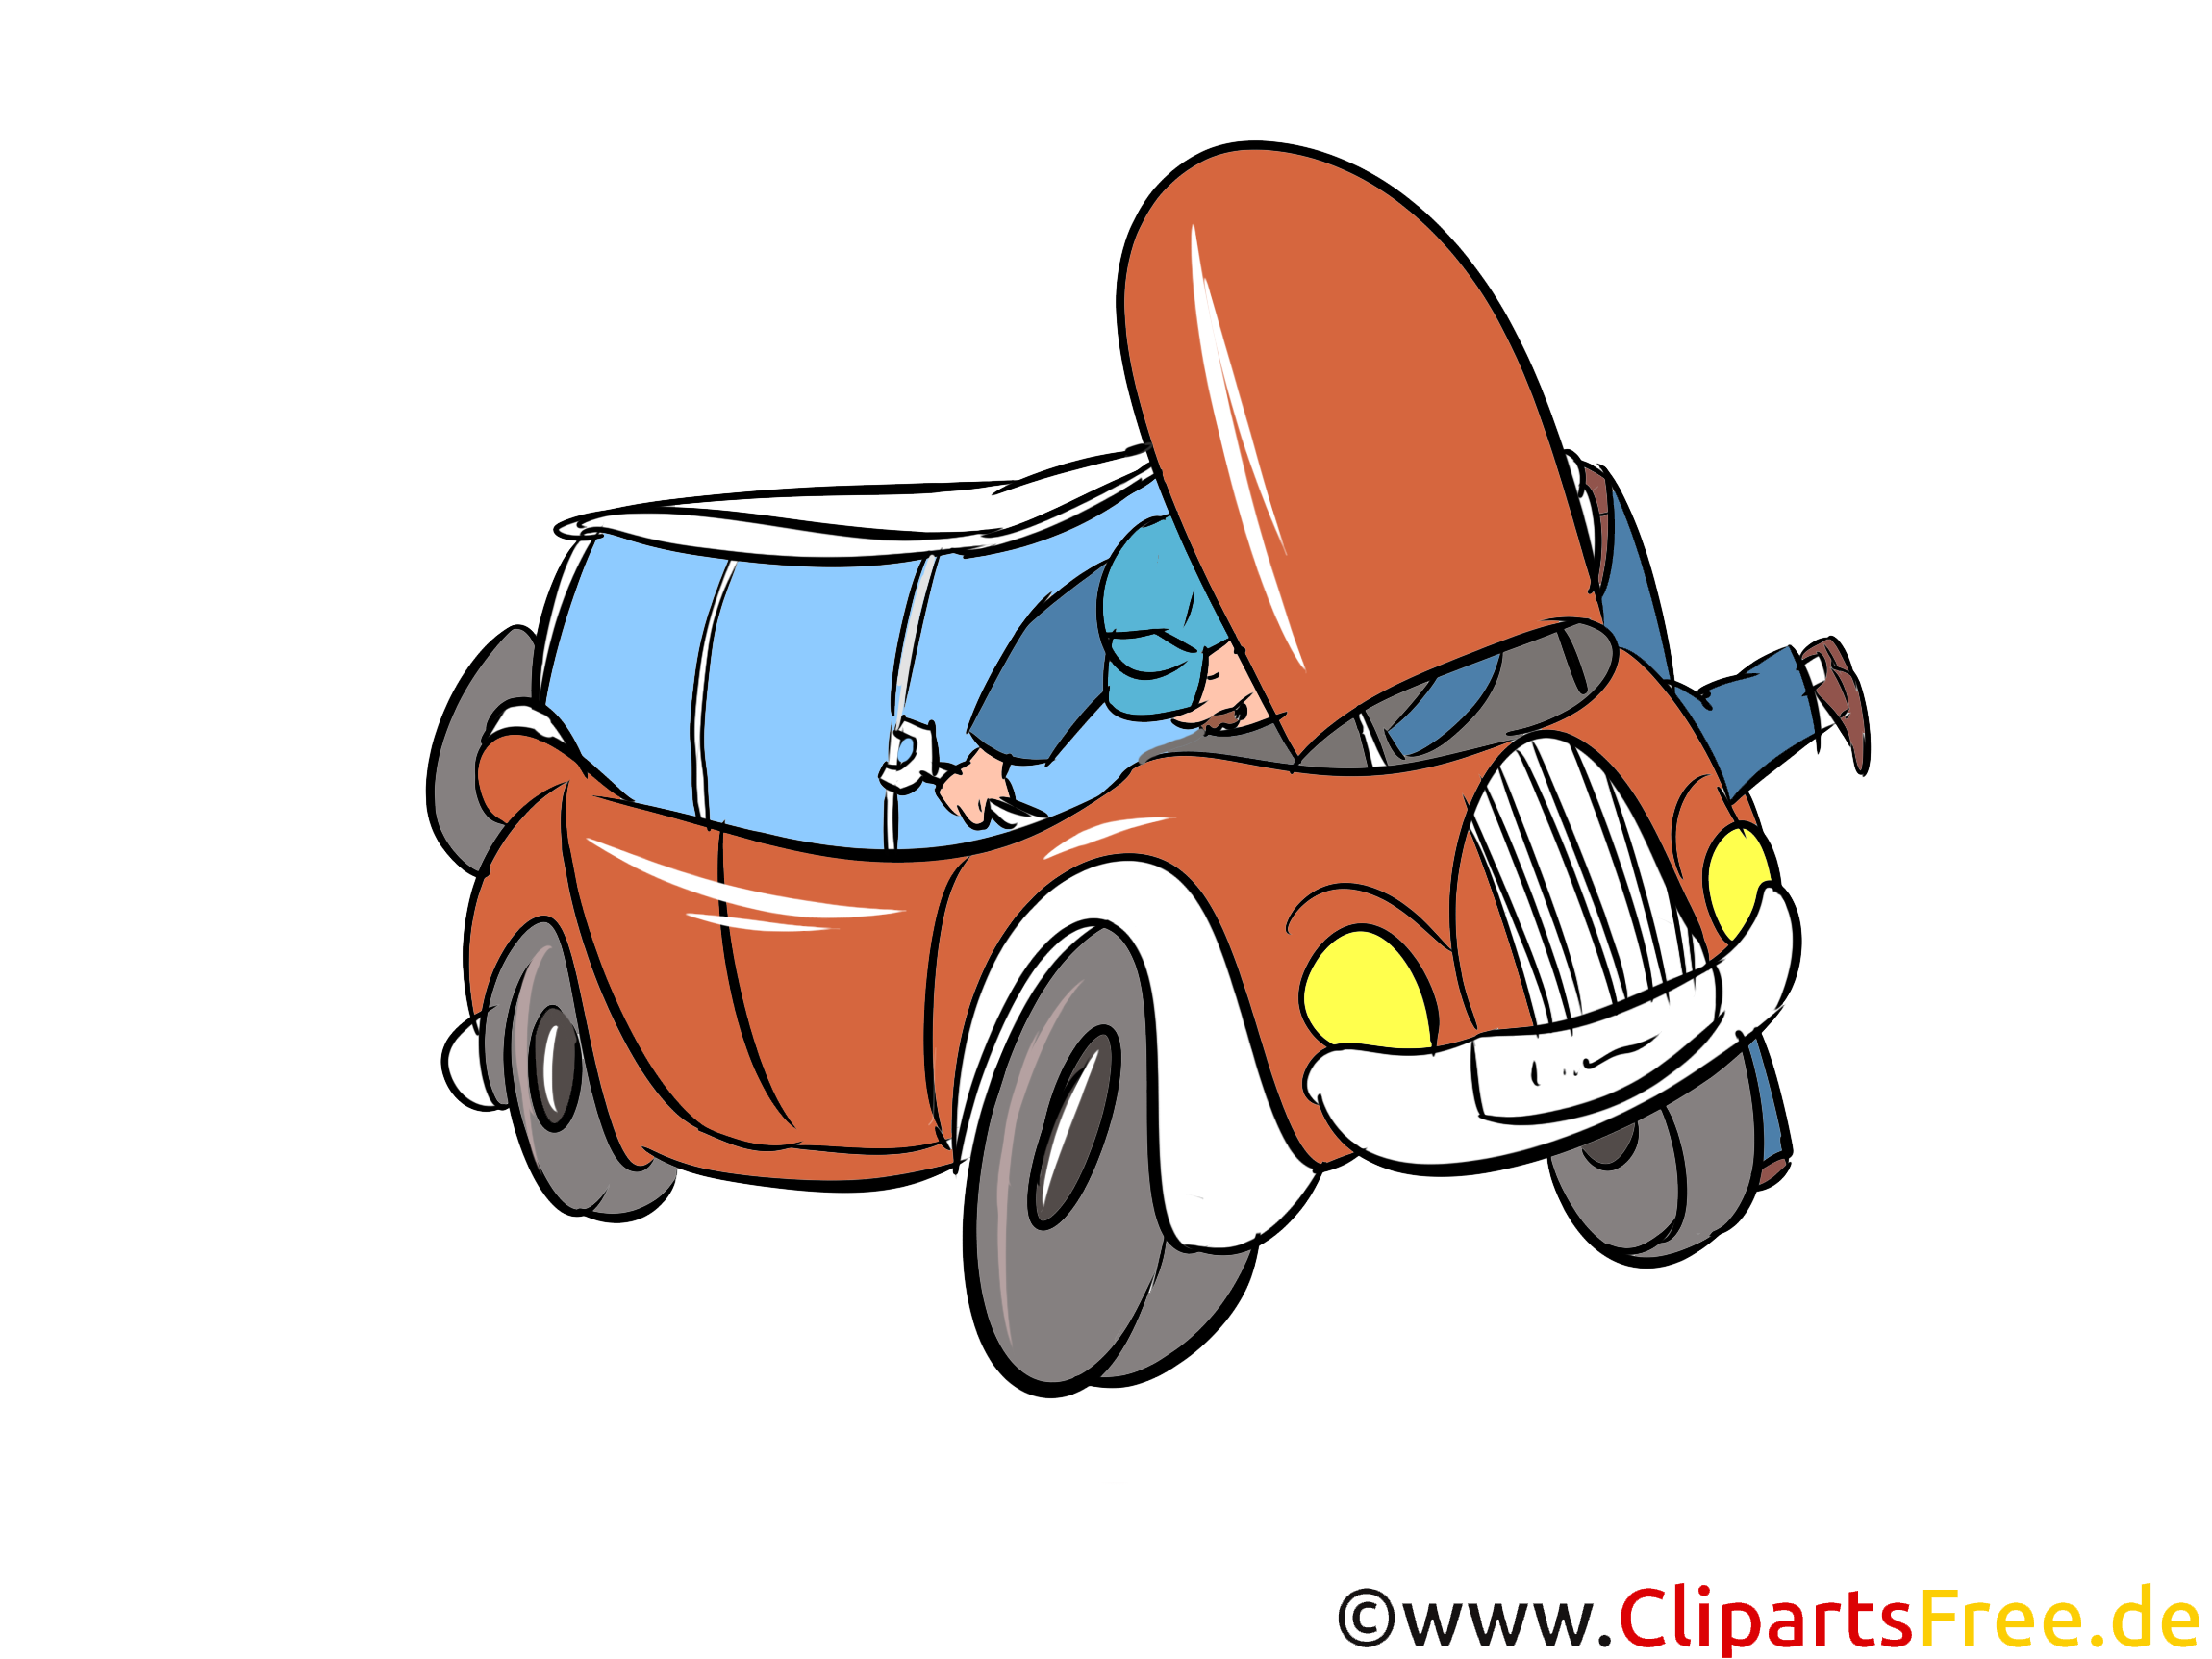 Autopanne auf Autobahn Bild, Illustration, Clipart, Cartoon gratis